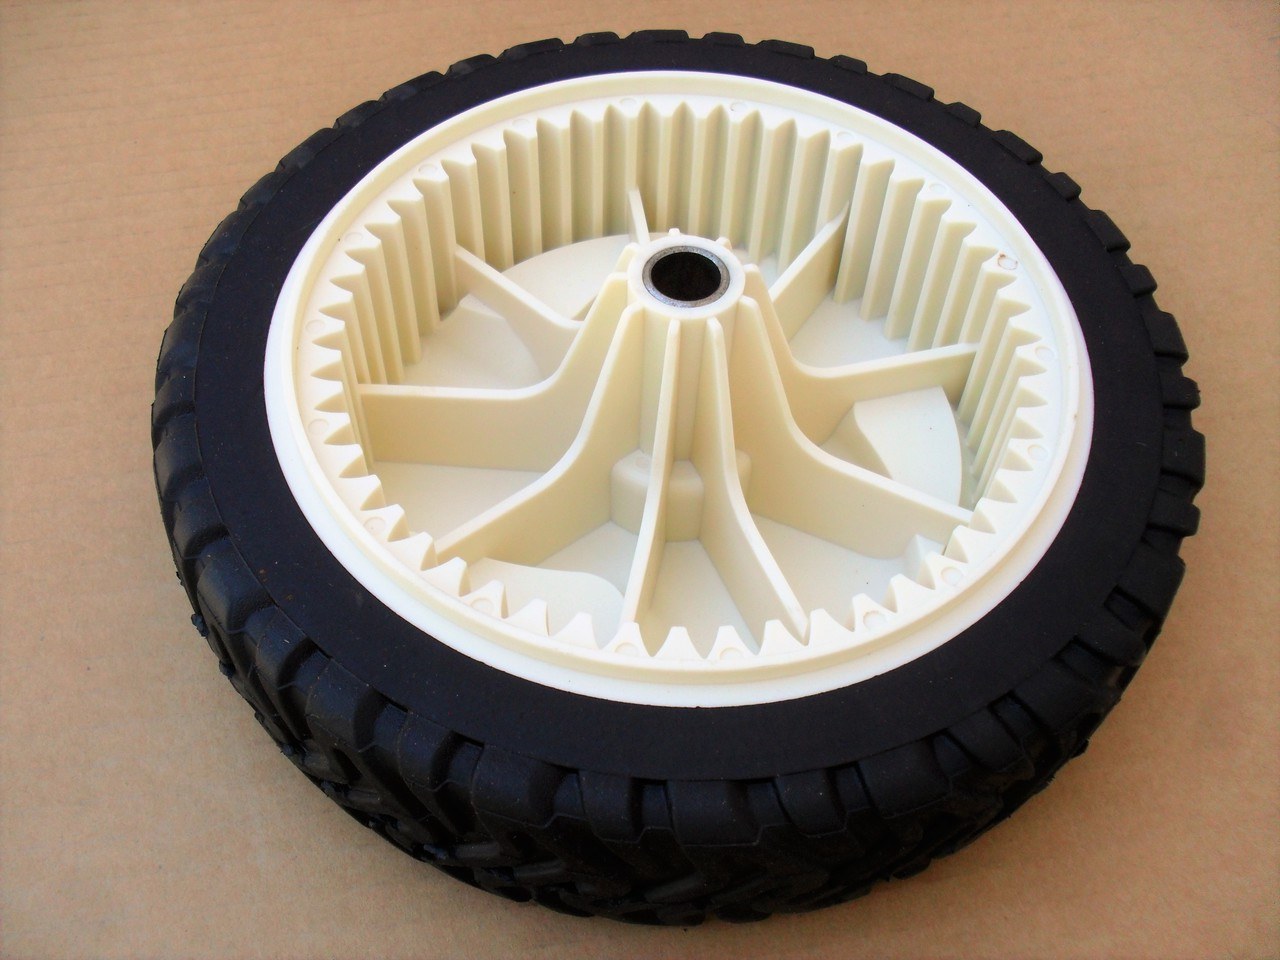 """Drive Wheel for Toro Recycler 22"""" Cut, 1051815, 105-1815, 20001, 20003, 20005, 20007, 20012, 20016, 20019, 20064, 20065, 20069, 20071, 20072, 20072A, 20086, 20087, 20094, 20110, 20111 Self Propelled"""